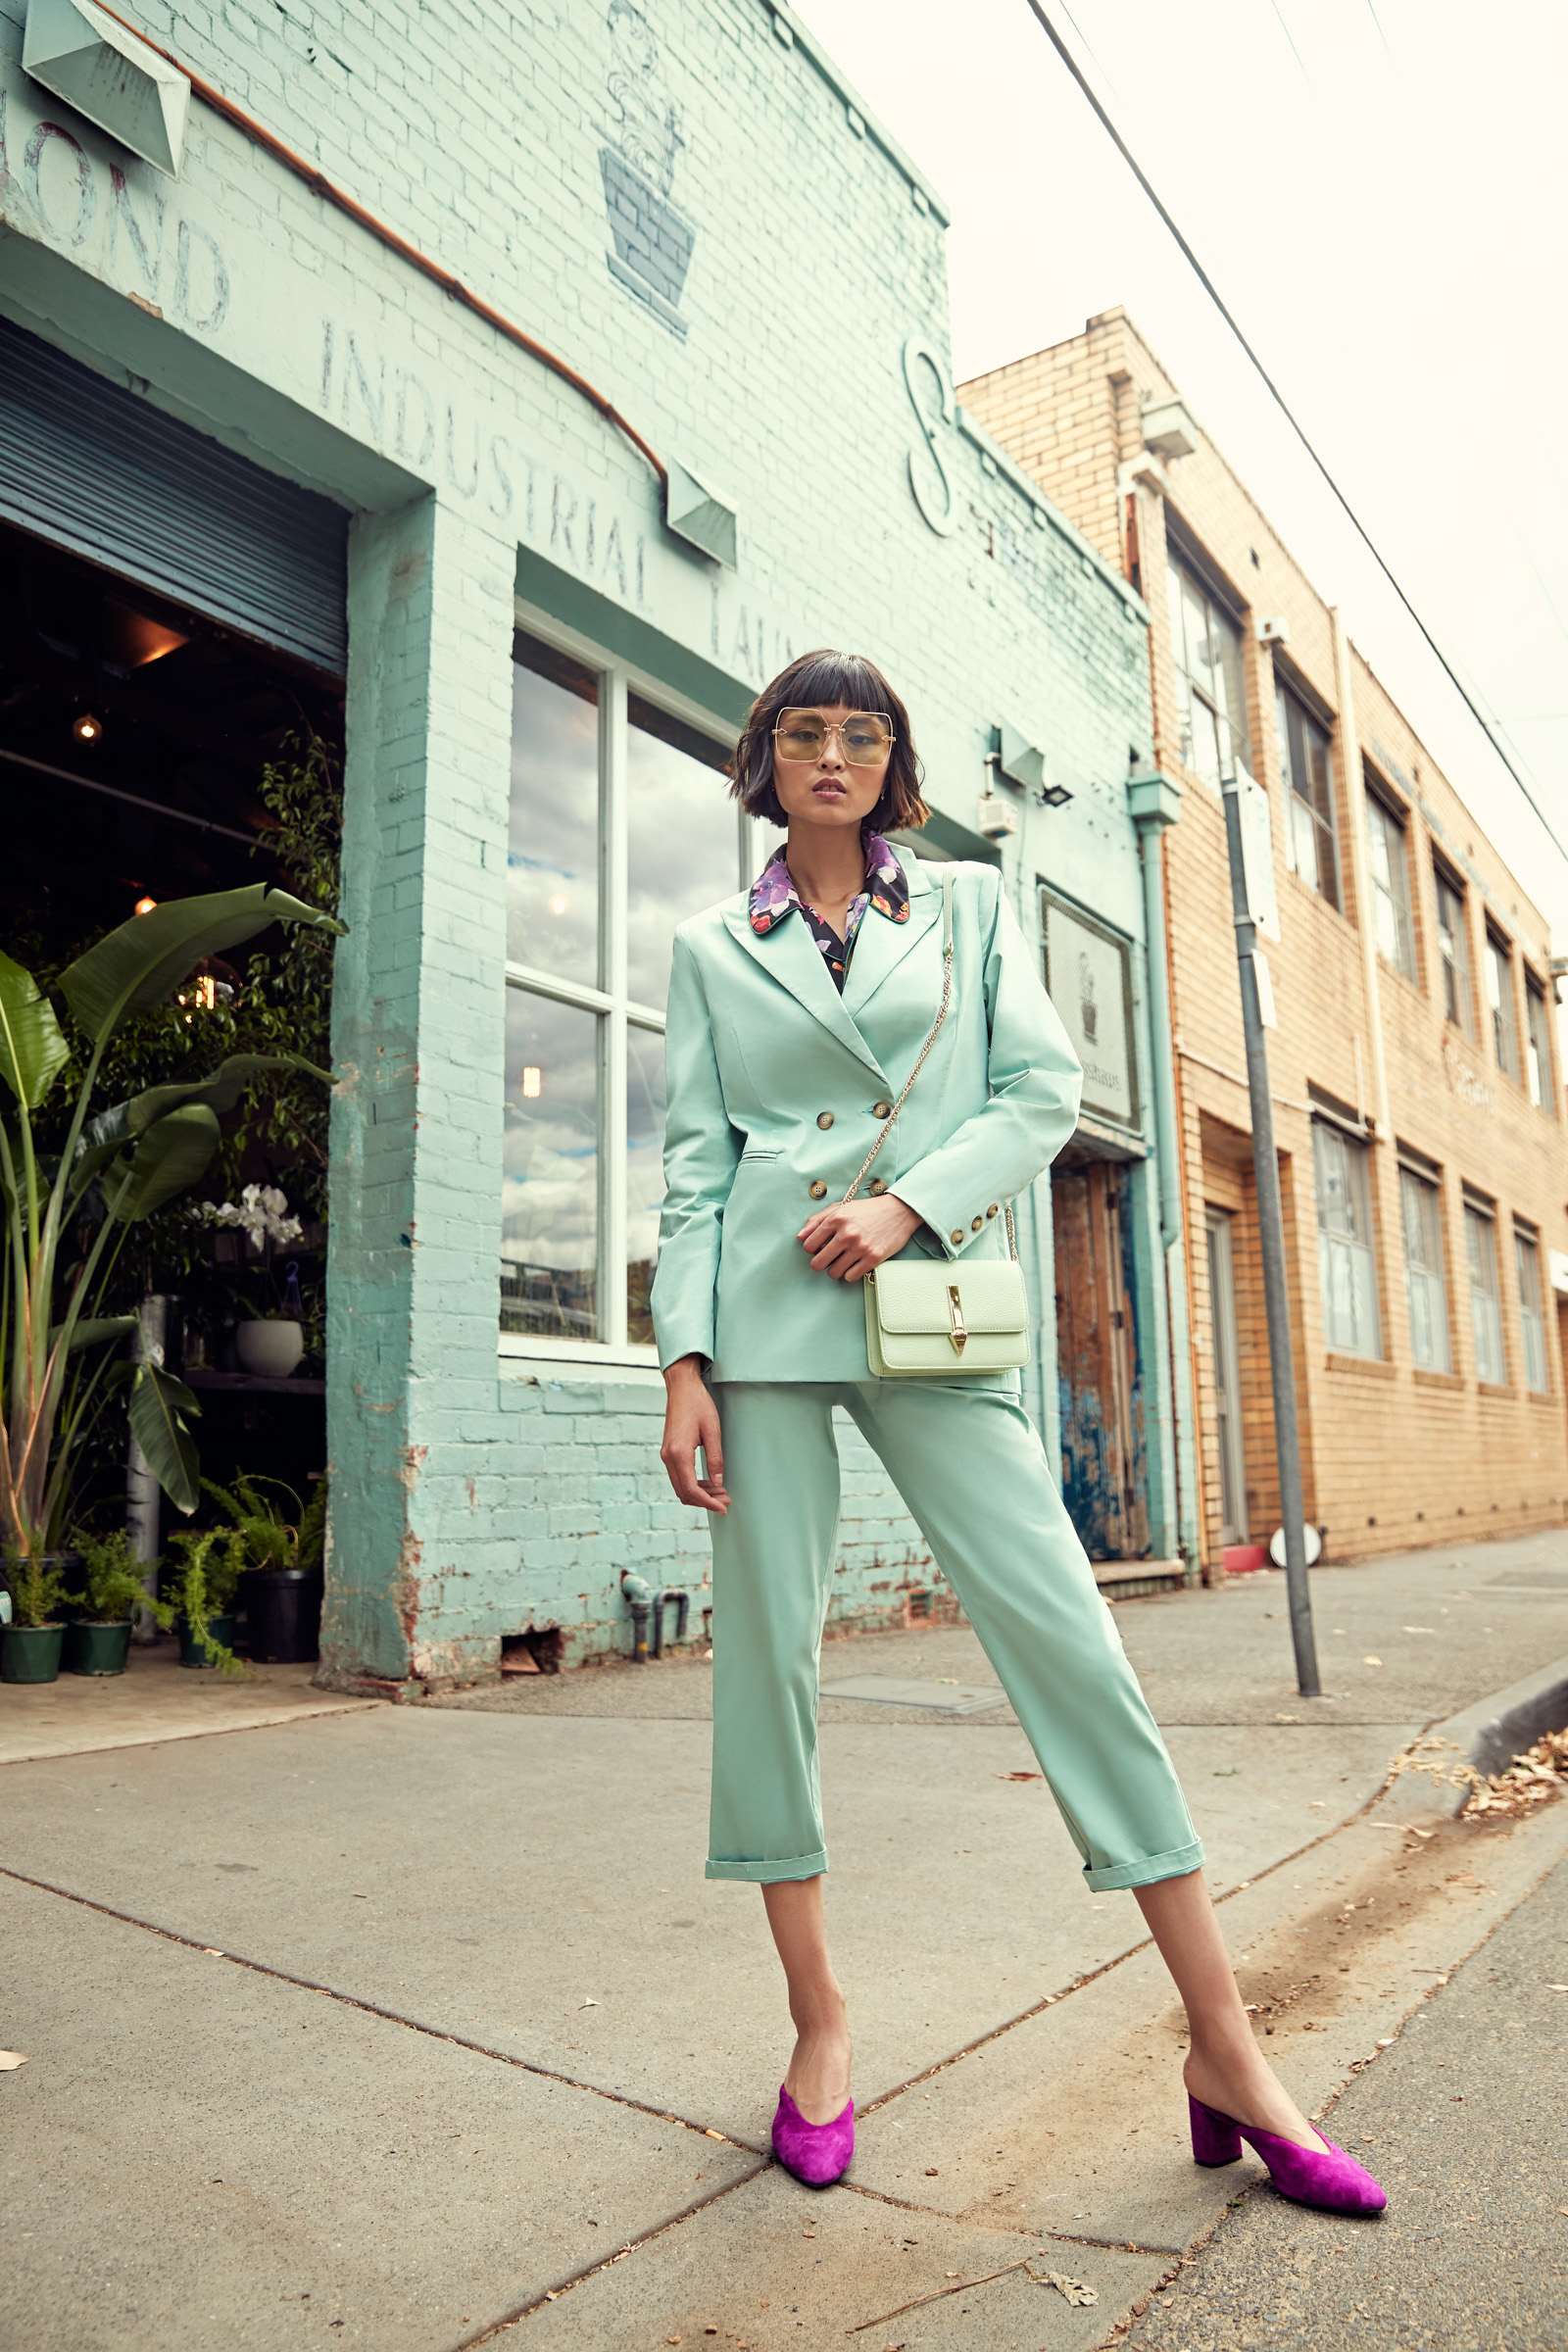 Model  Cynthia Wu  wears Sweepstake Winners  Bobby blazer,  $229,  Bobby trouser , $199 and  Orchid PJ shirt , $229, Karen Walker  Nirvana sunglasses,  $369 and  Molly bag , $350 and Miss Wilson  Kerrey heel , $279. Photographed outside  Glasshaus Inside  . The BeautyEQ team travelled to Melbourne with thanks to   Visit Melbourne  .